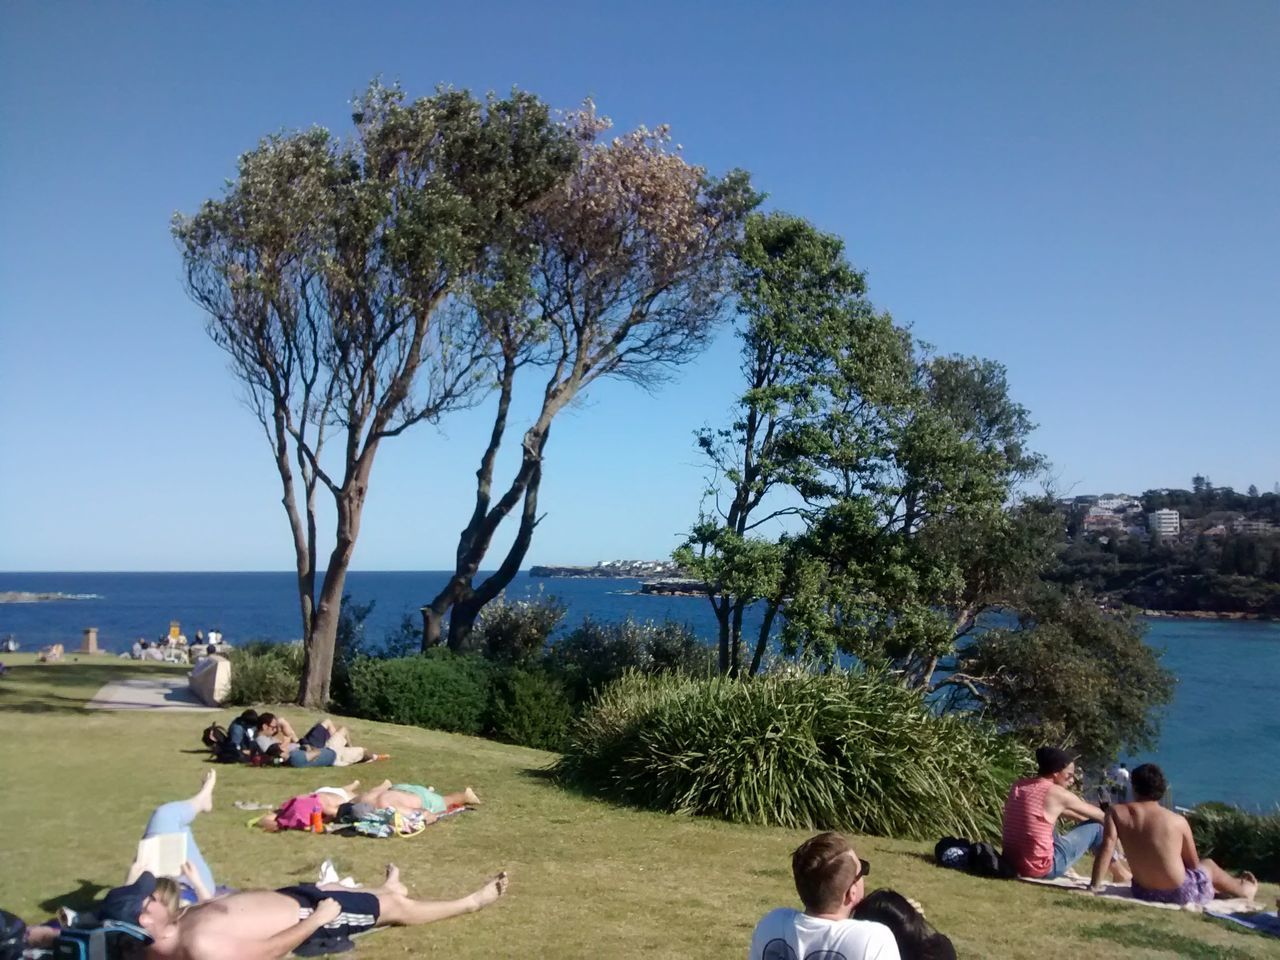 Adult Beach Child Clear Sky Cliff Day Group Of People Landscape Leisure Activity Men Nature Outdoors People Sea Sky Sunbathing Sydney, Australia Togetherness Tree Tree Vacations Water Women